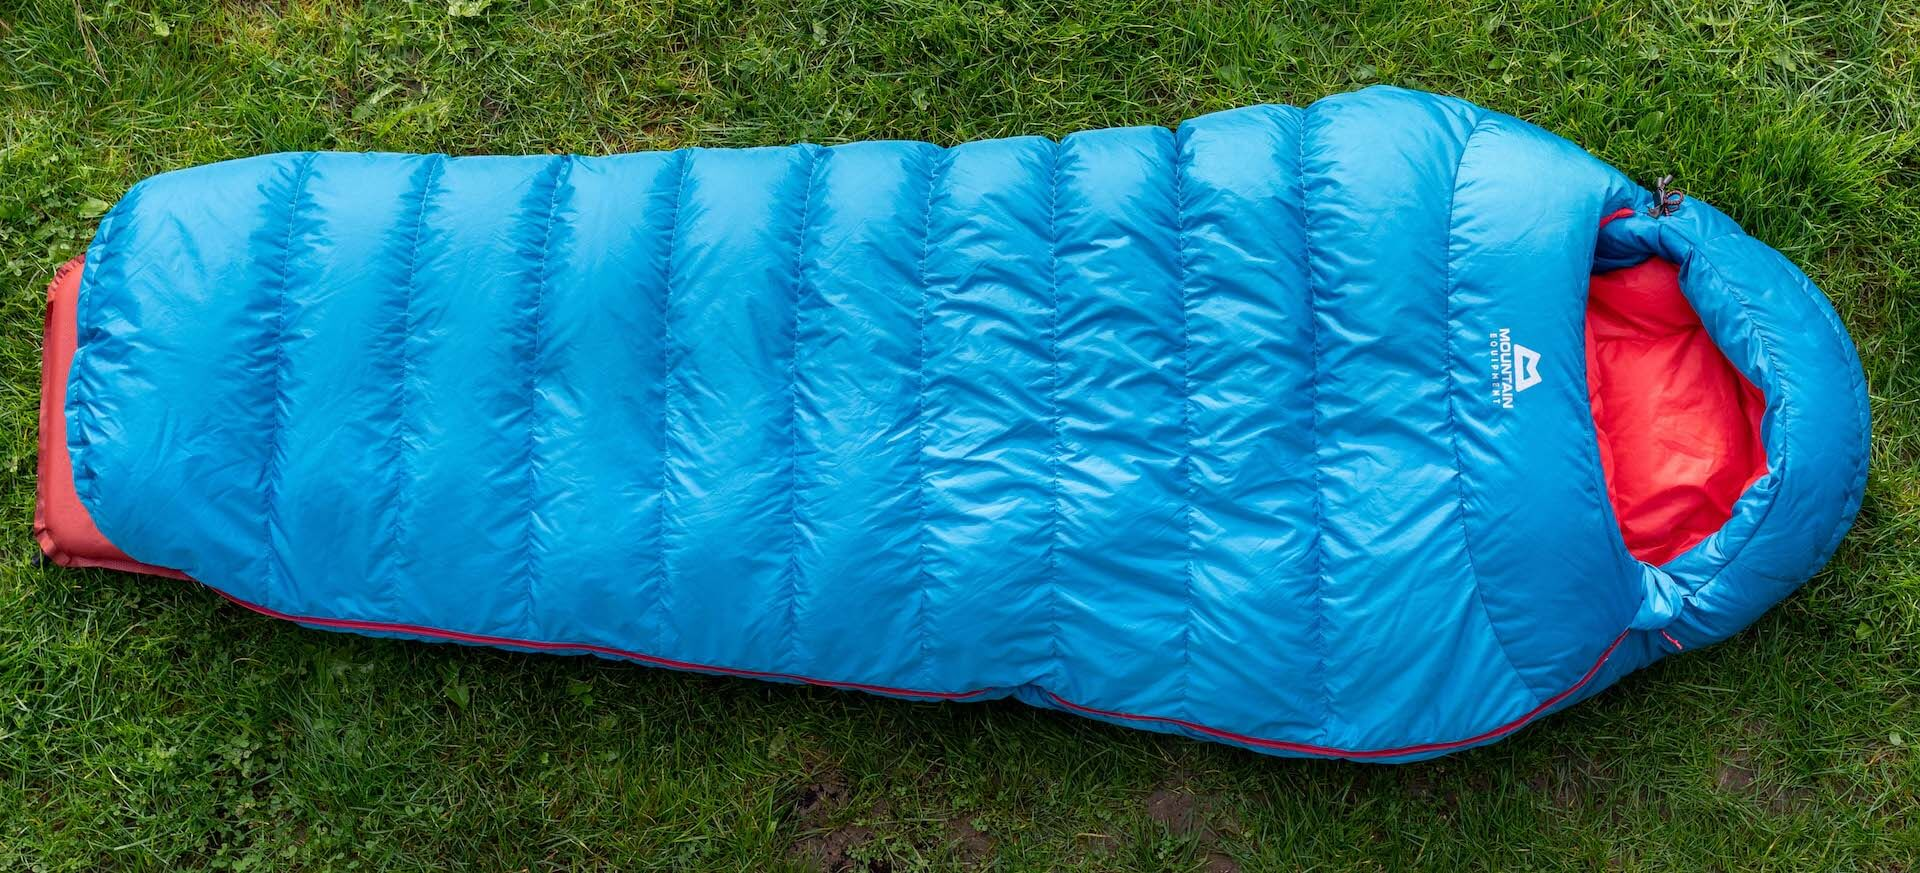 mountain-equipment classic-750 frau schlaftsacktest gear-review test gesamtansicht blau